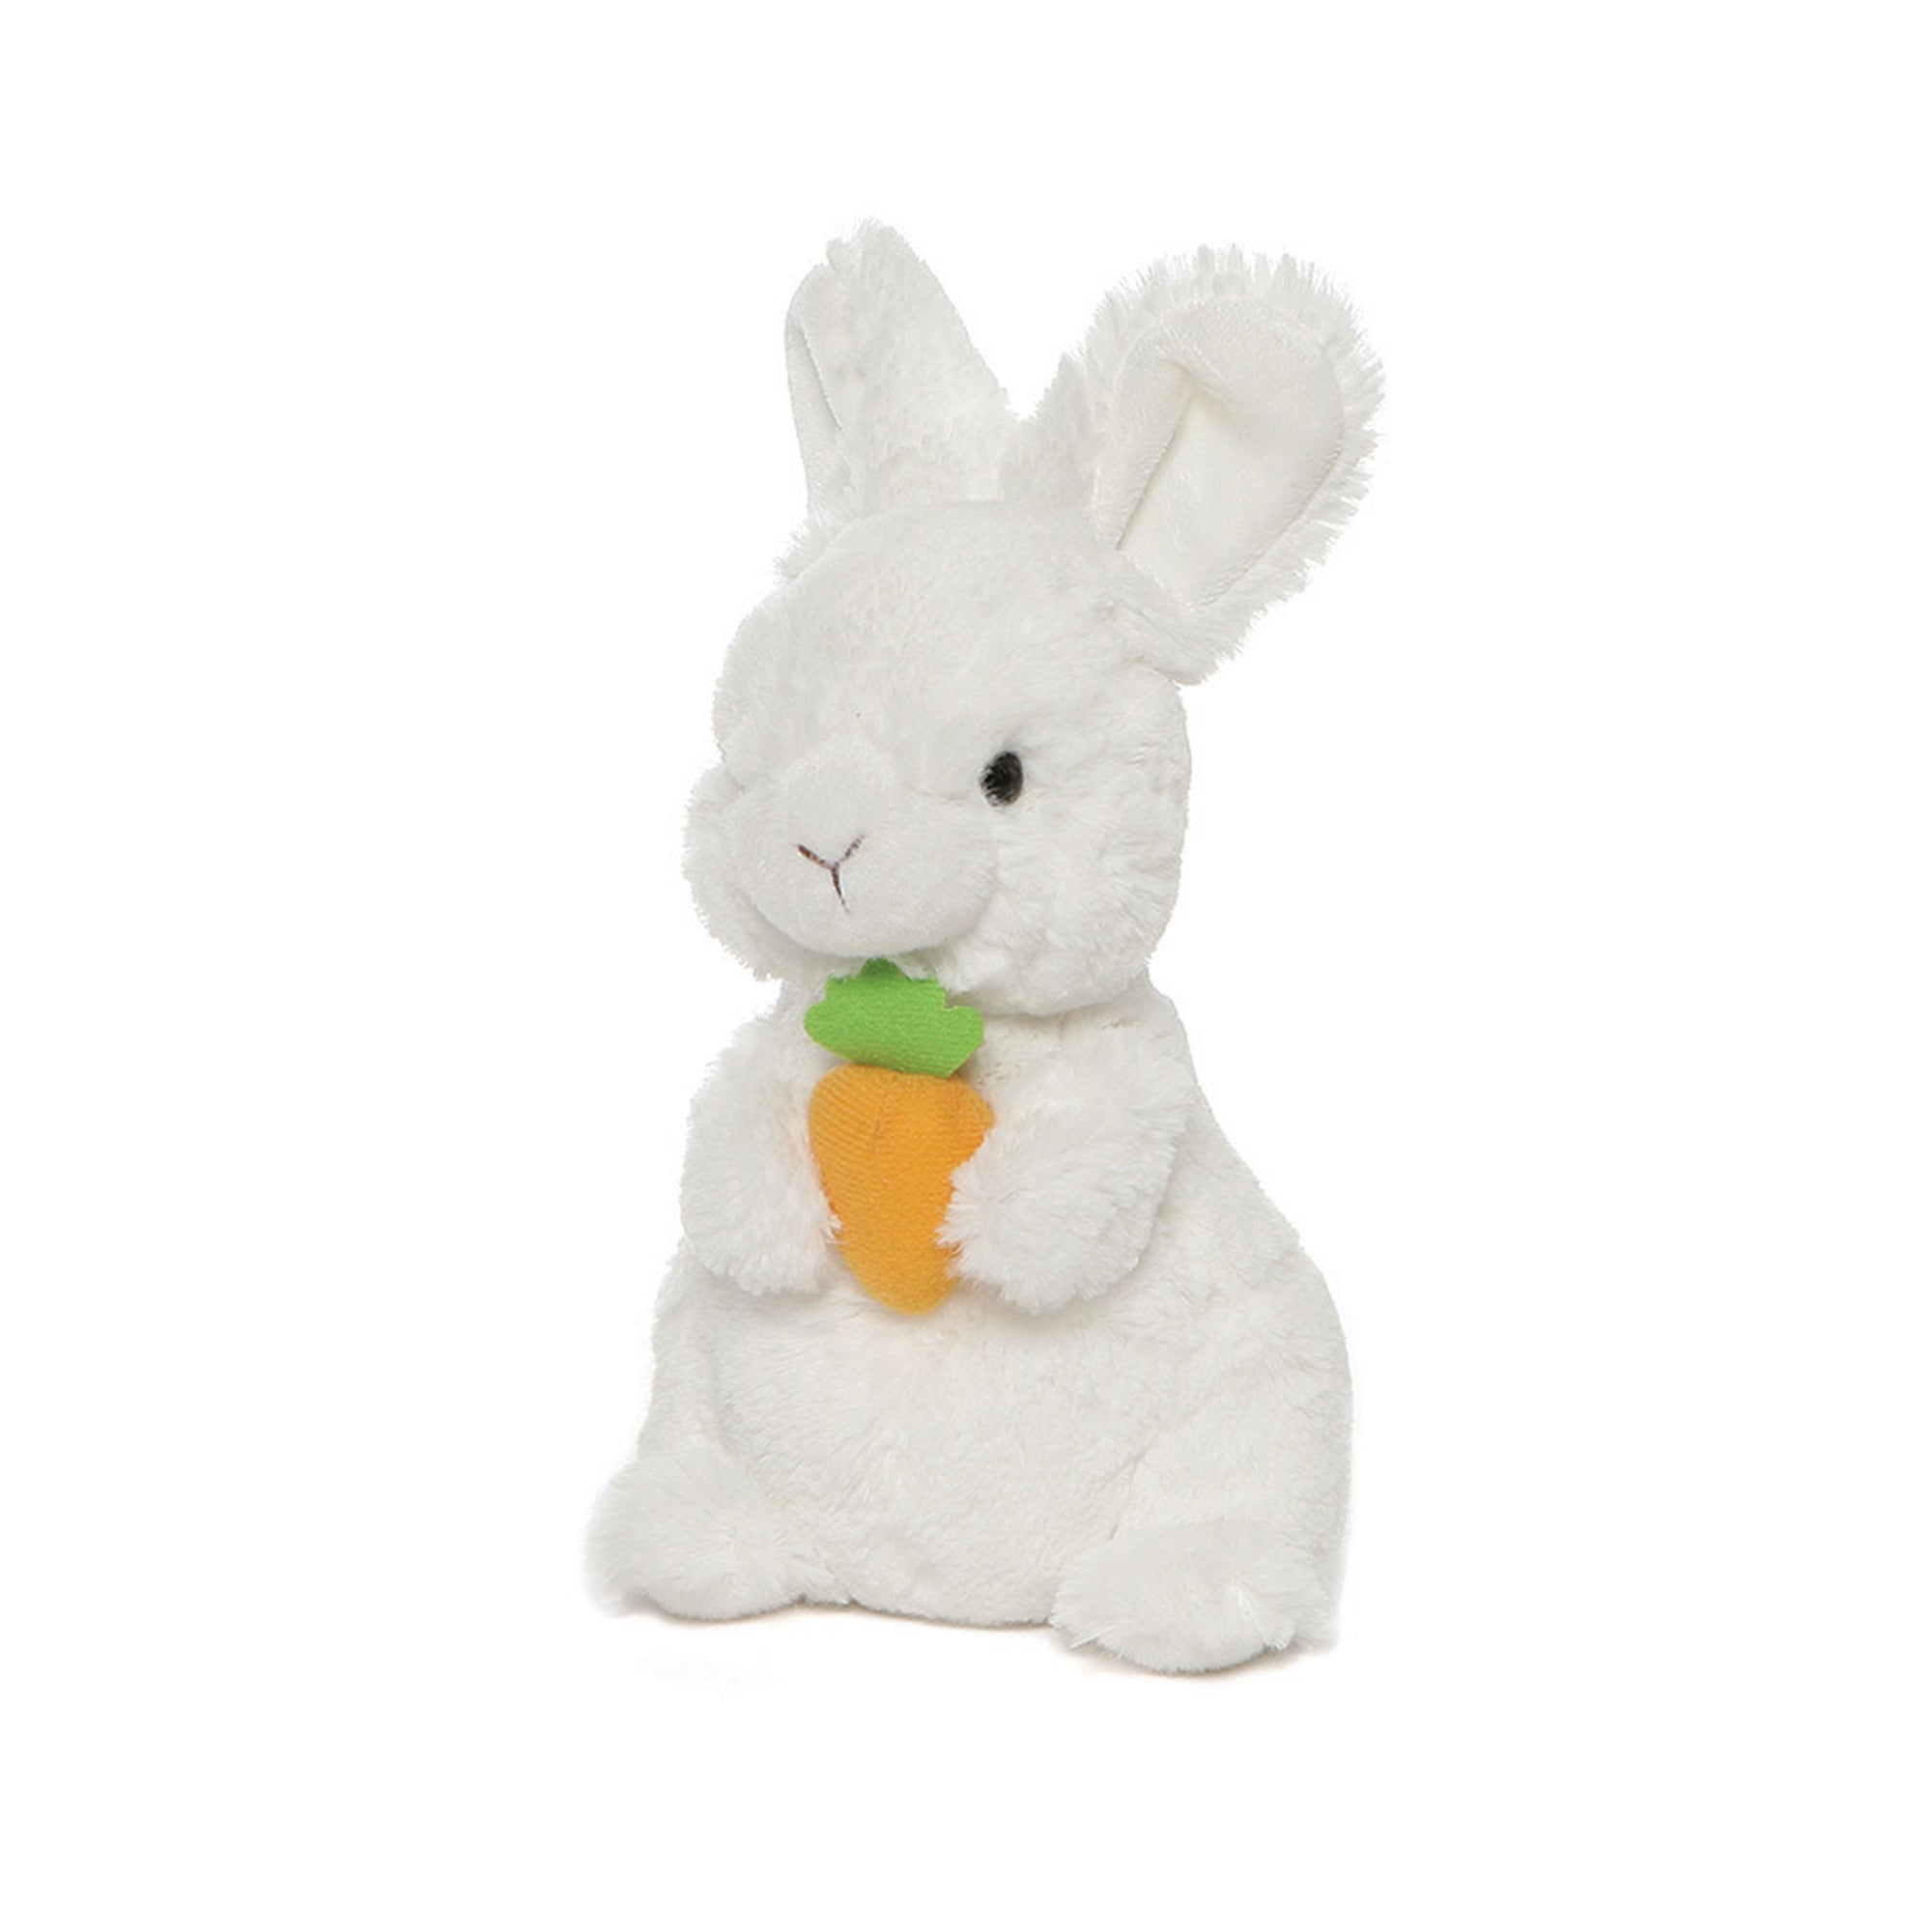 Gund - Lil Whispers Rabbit with Carrot - 7.5""